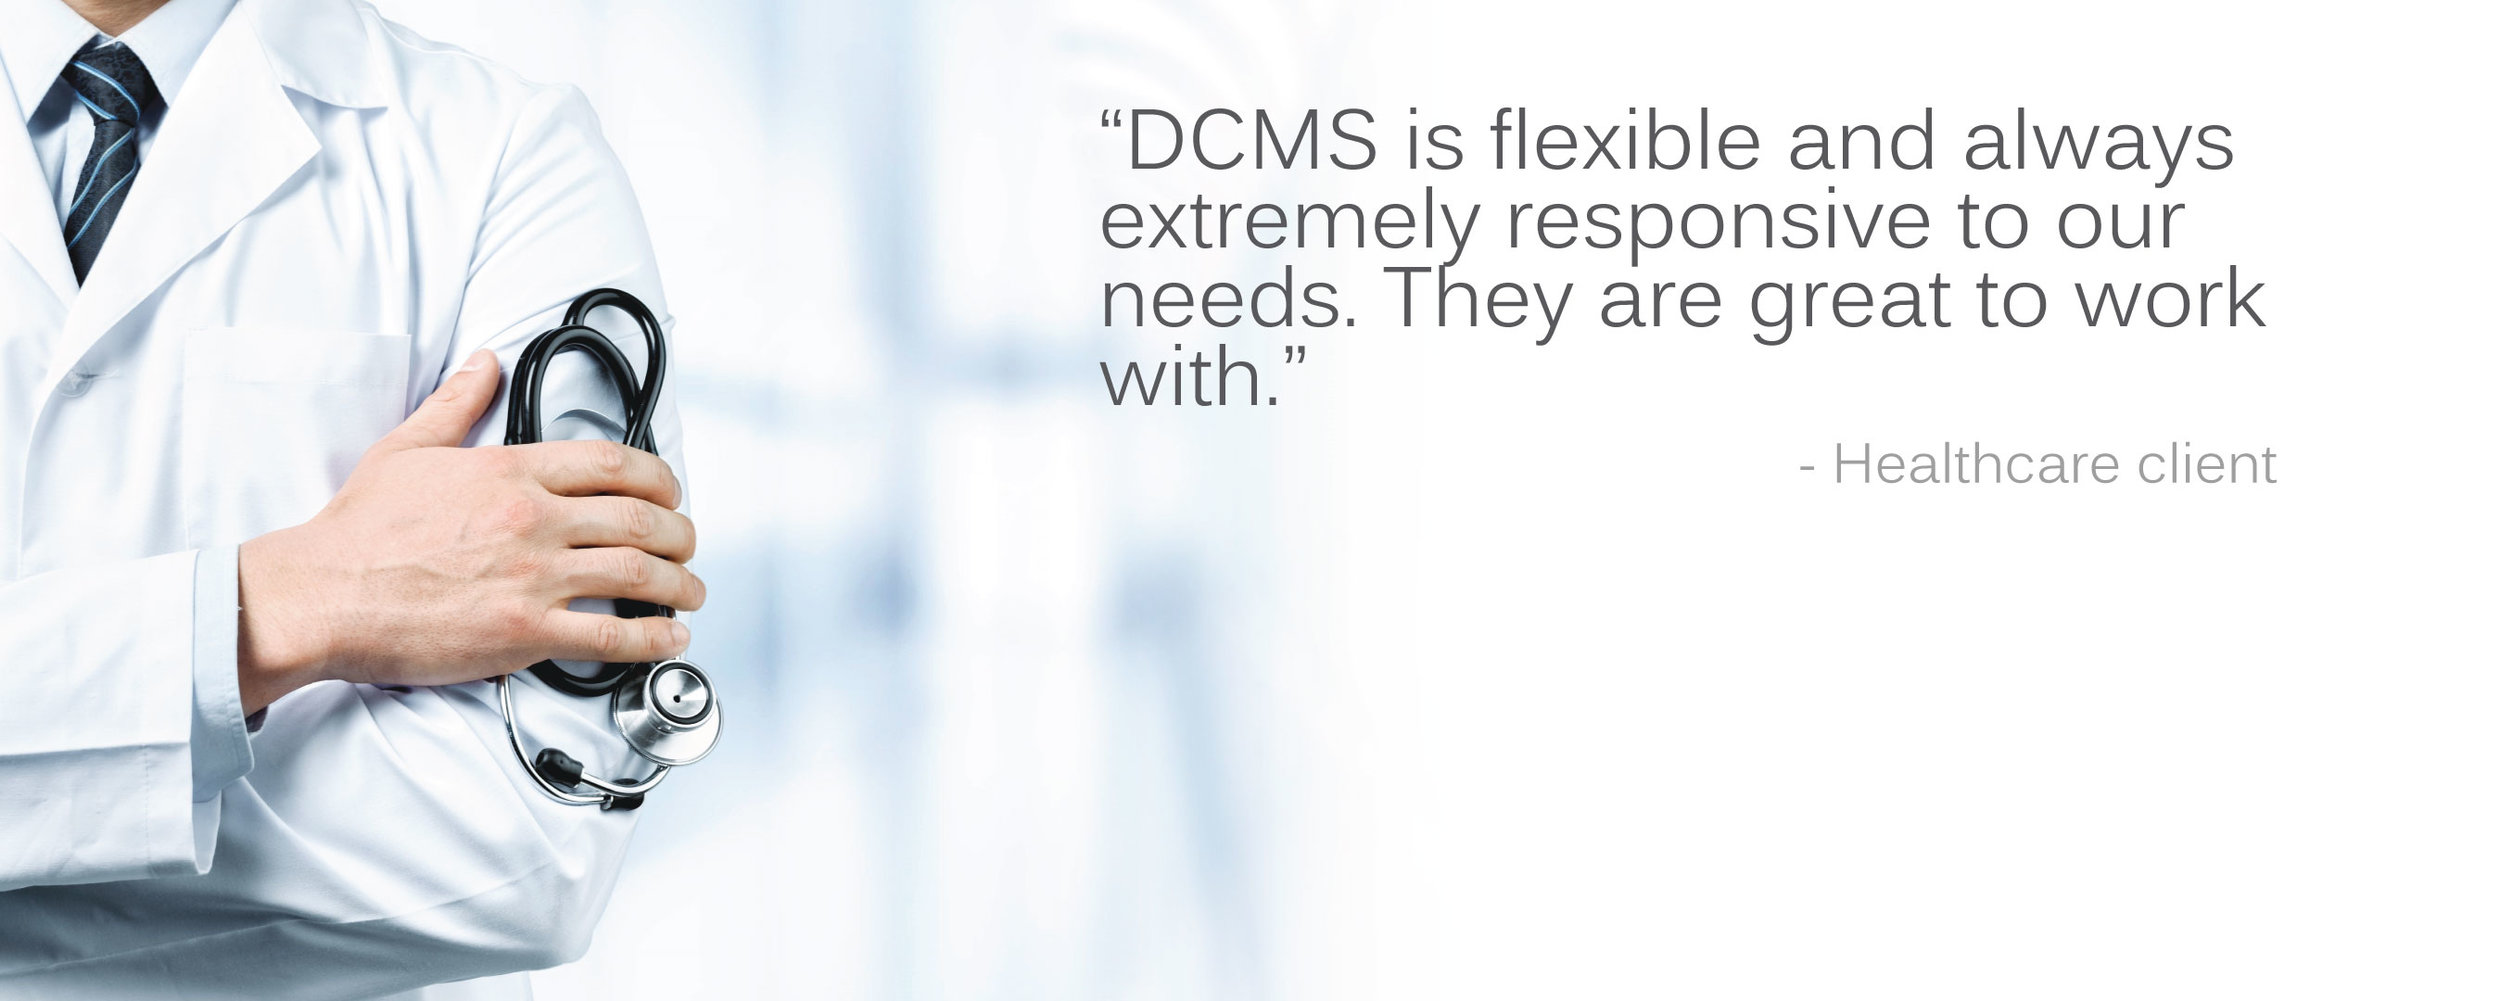 "Healthcare client testimonial: """"DCMS is flexible and always extremely responsive to our needs. They are great to work with."""